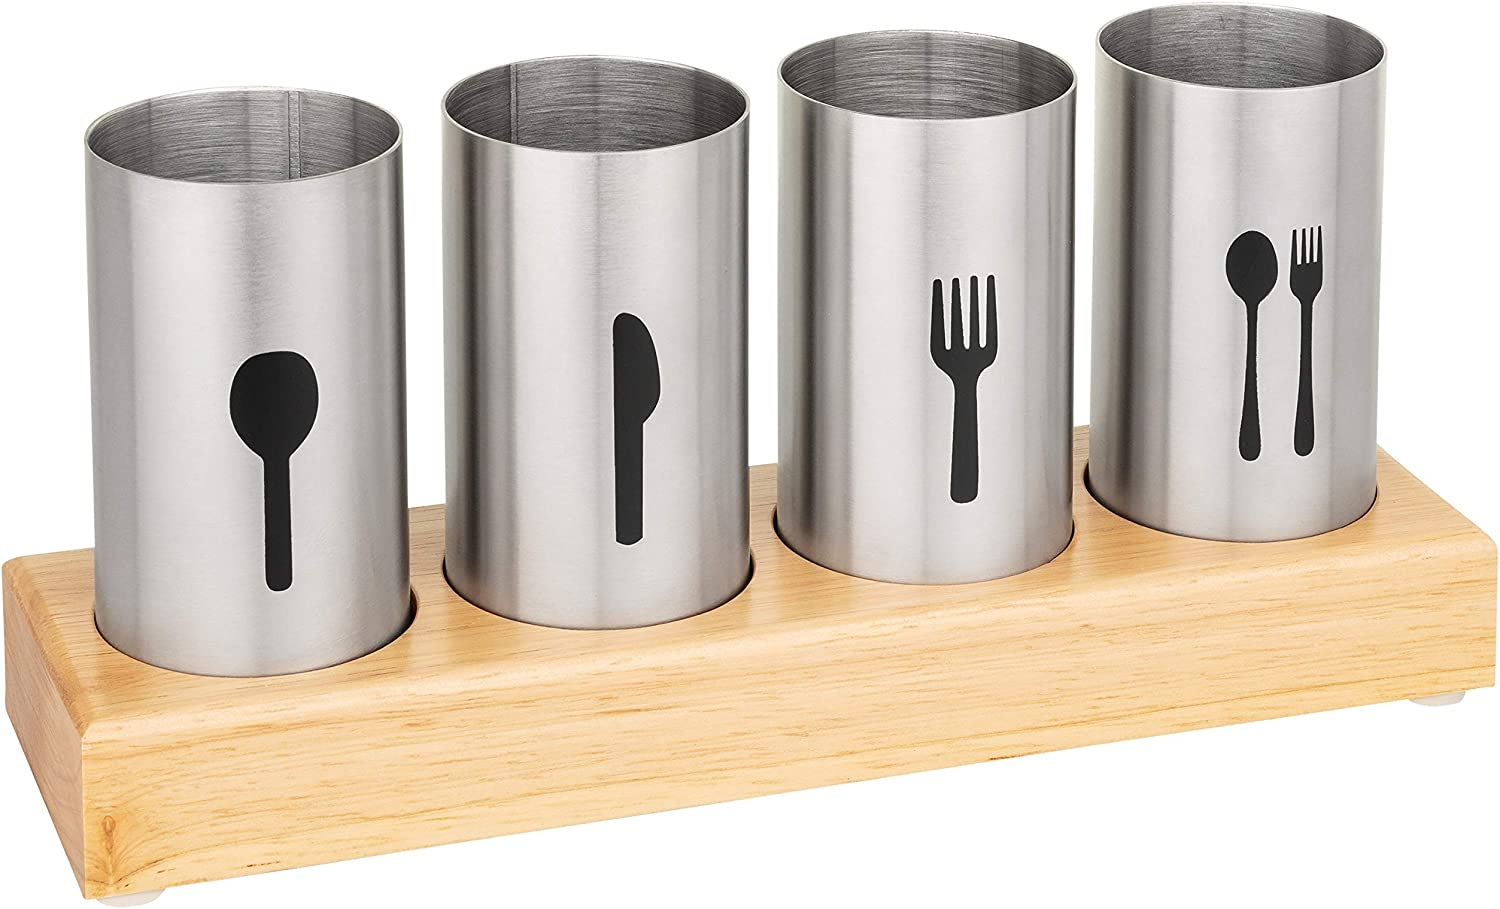 Blissful Home Stainless Steel Flatware & Silverware Cutlery Holder Caddy - Easily Organize Your Spoons, Knives, Forks, etc - Ideal for Kitchen, Dining, Entertaining, Picnics, and Much More…